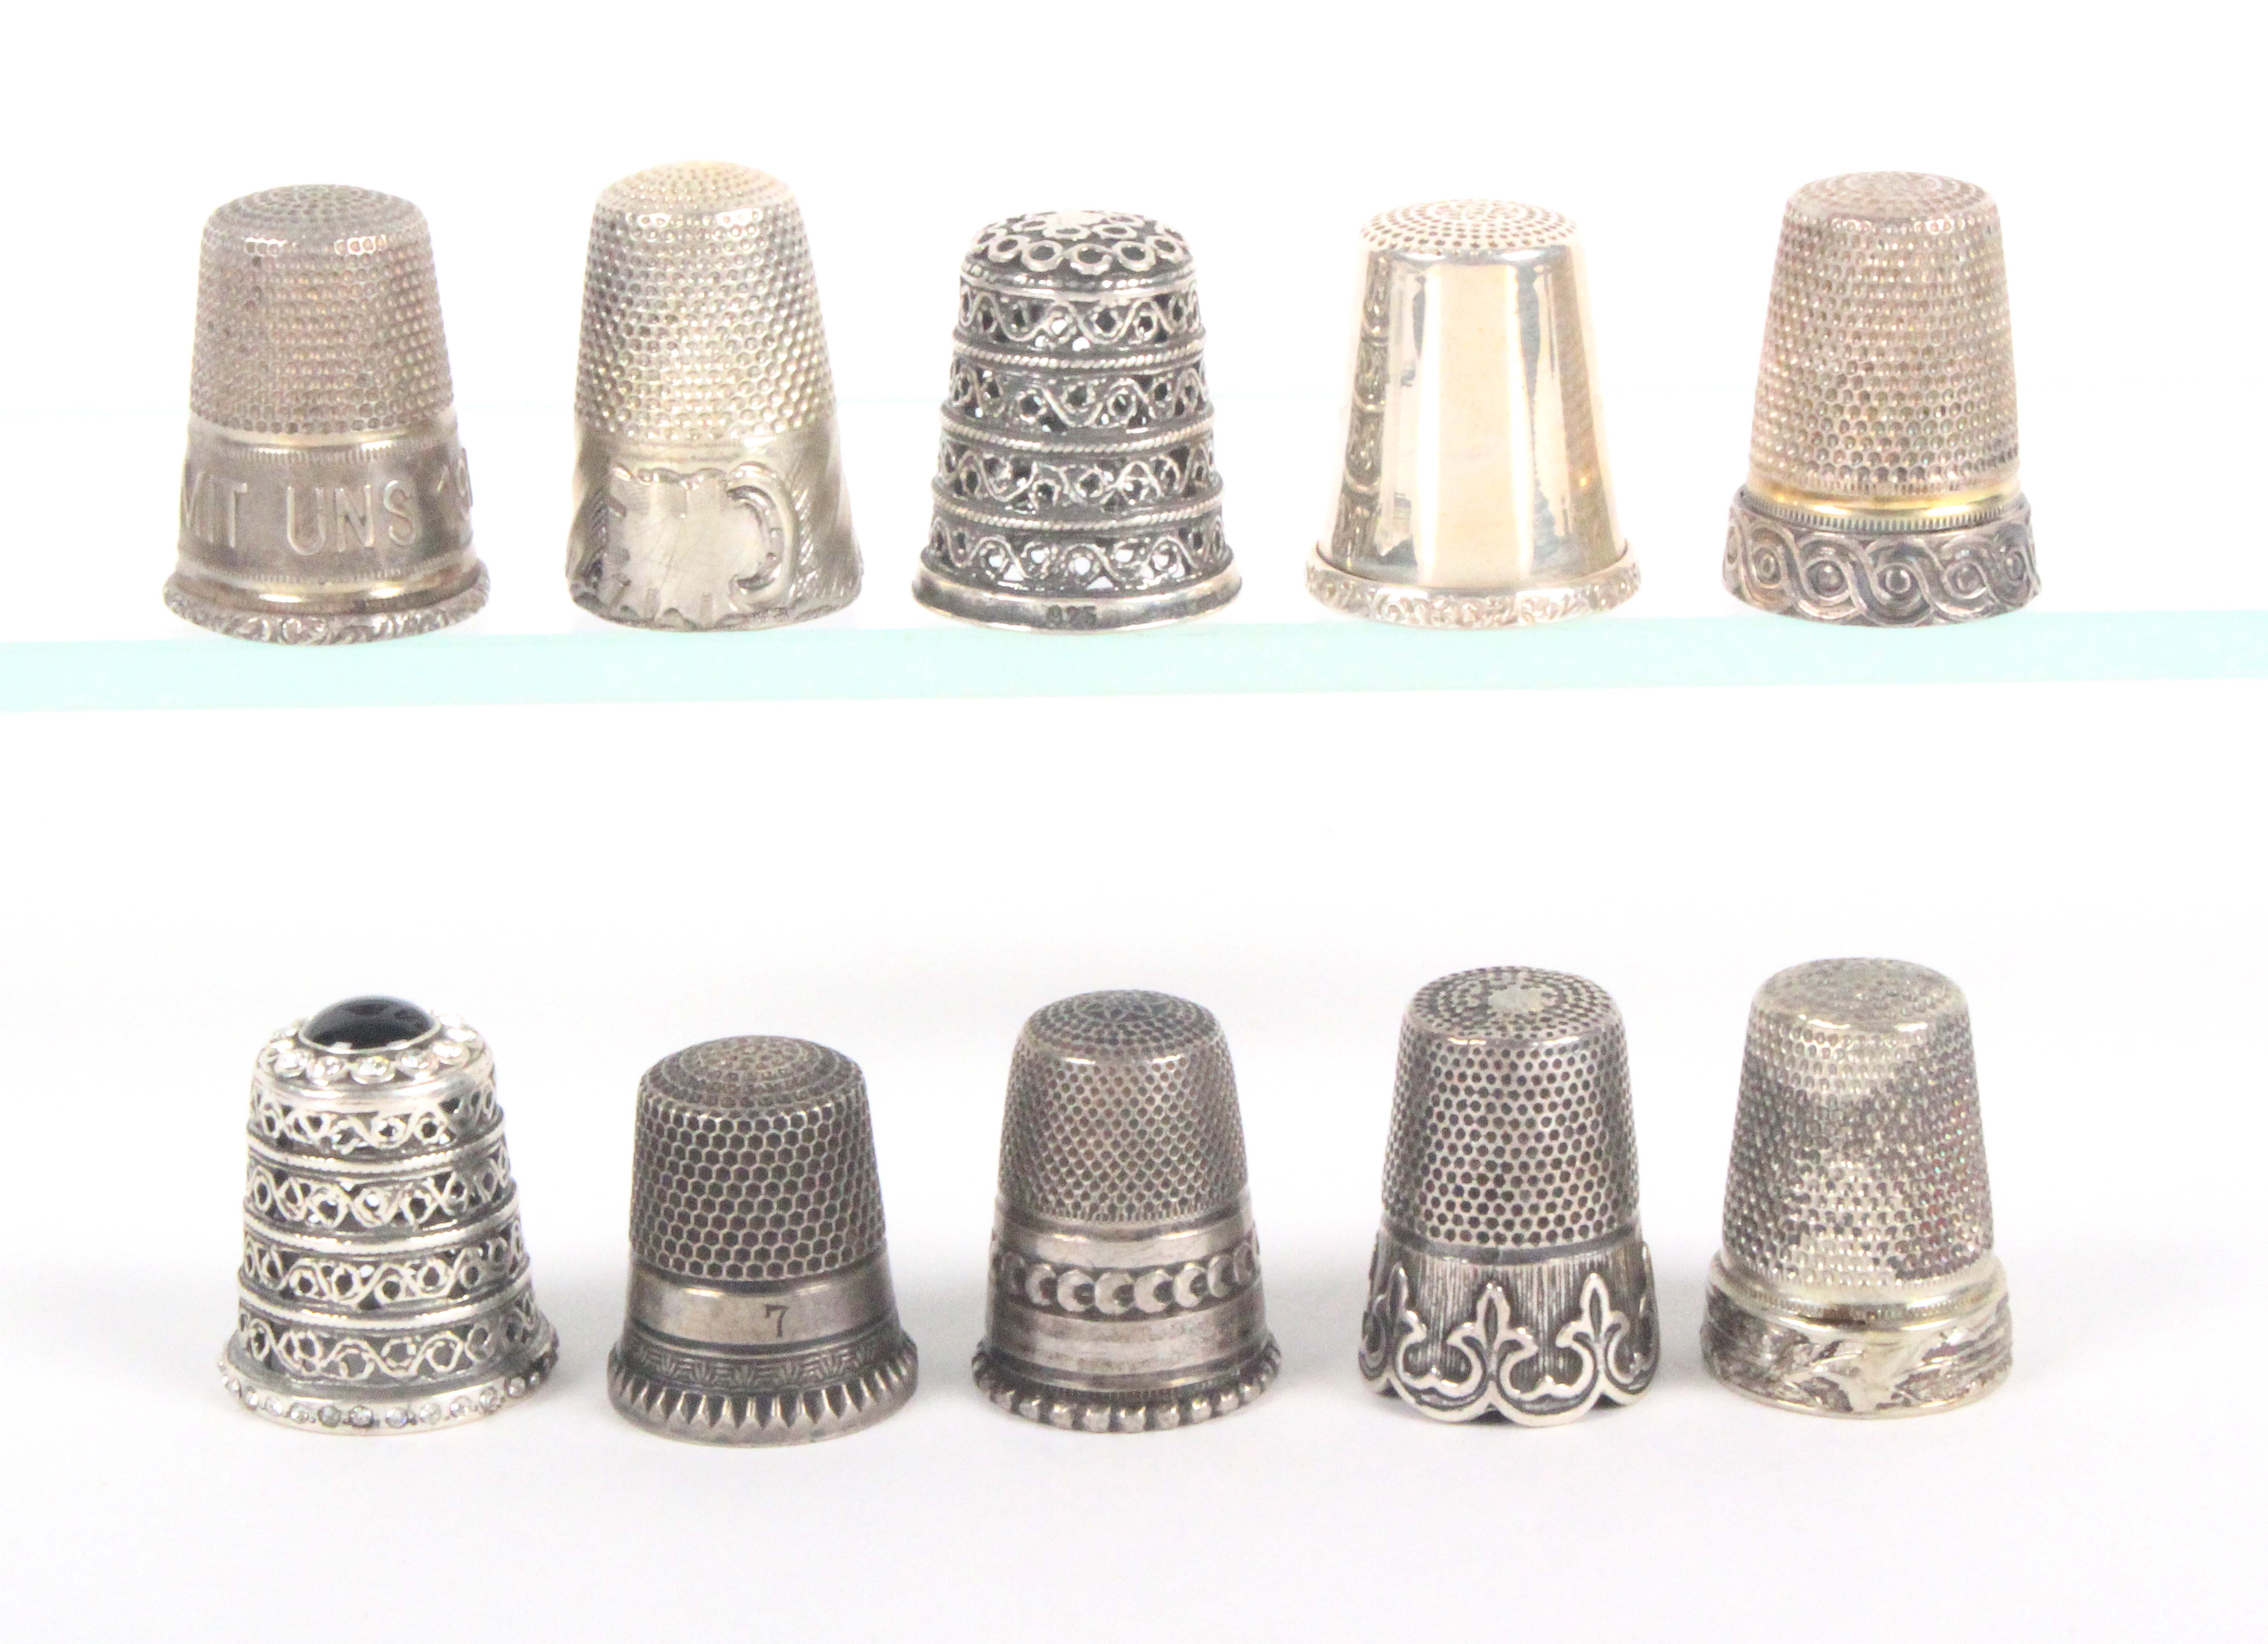 Ten 19th Century and later continental silver thimbles, including one with frieze inscribed 'Gott